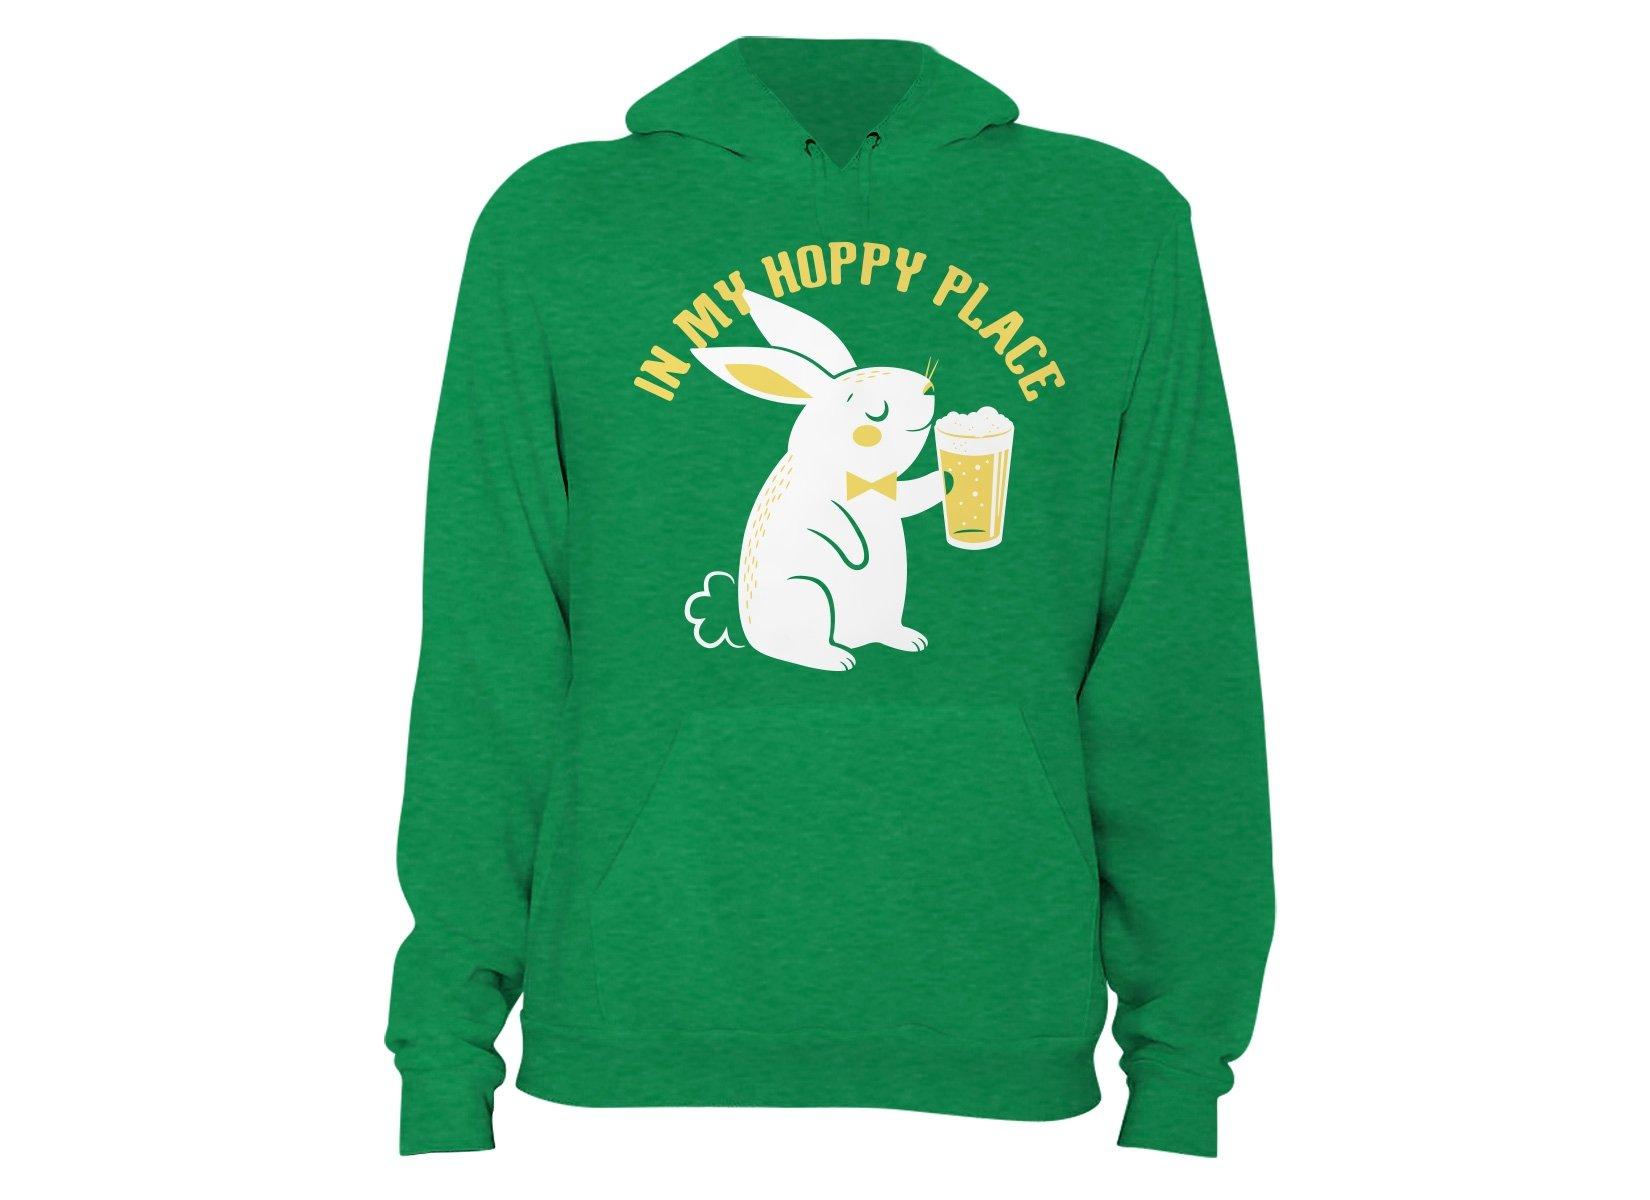 In My Hoppy Place on Hoodie